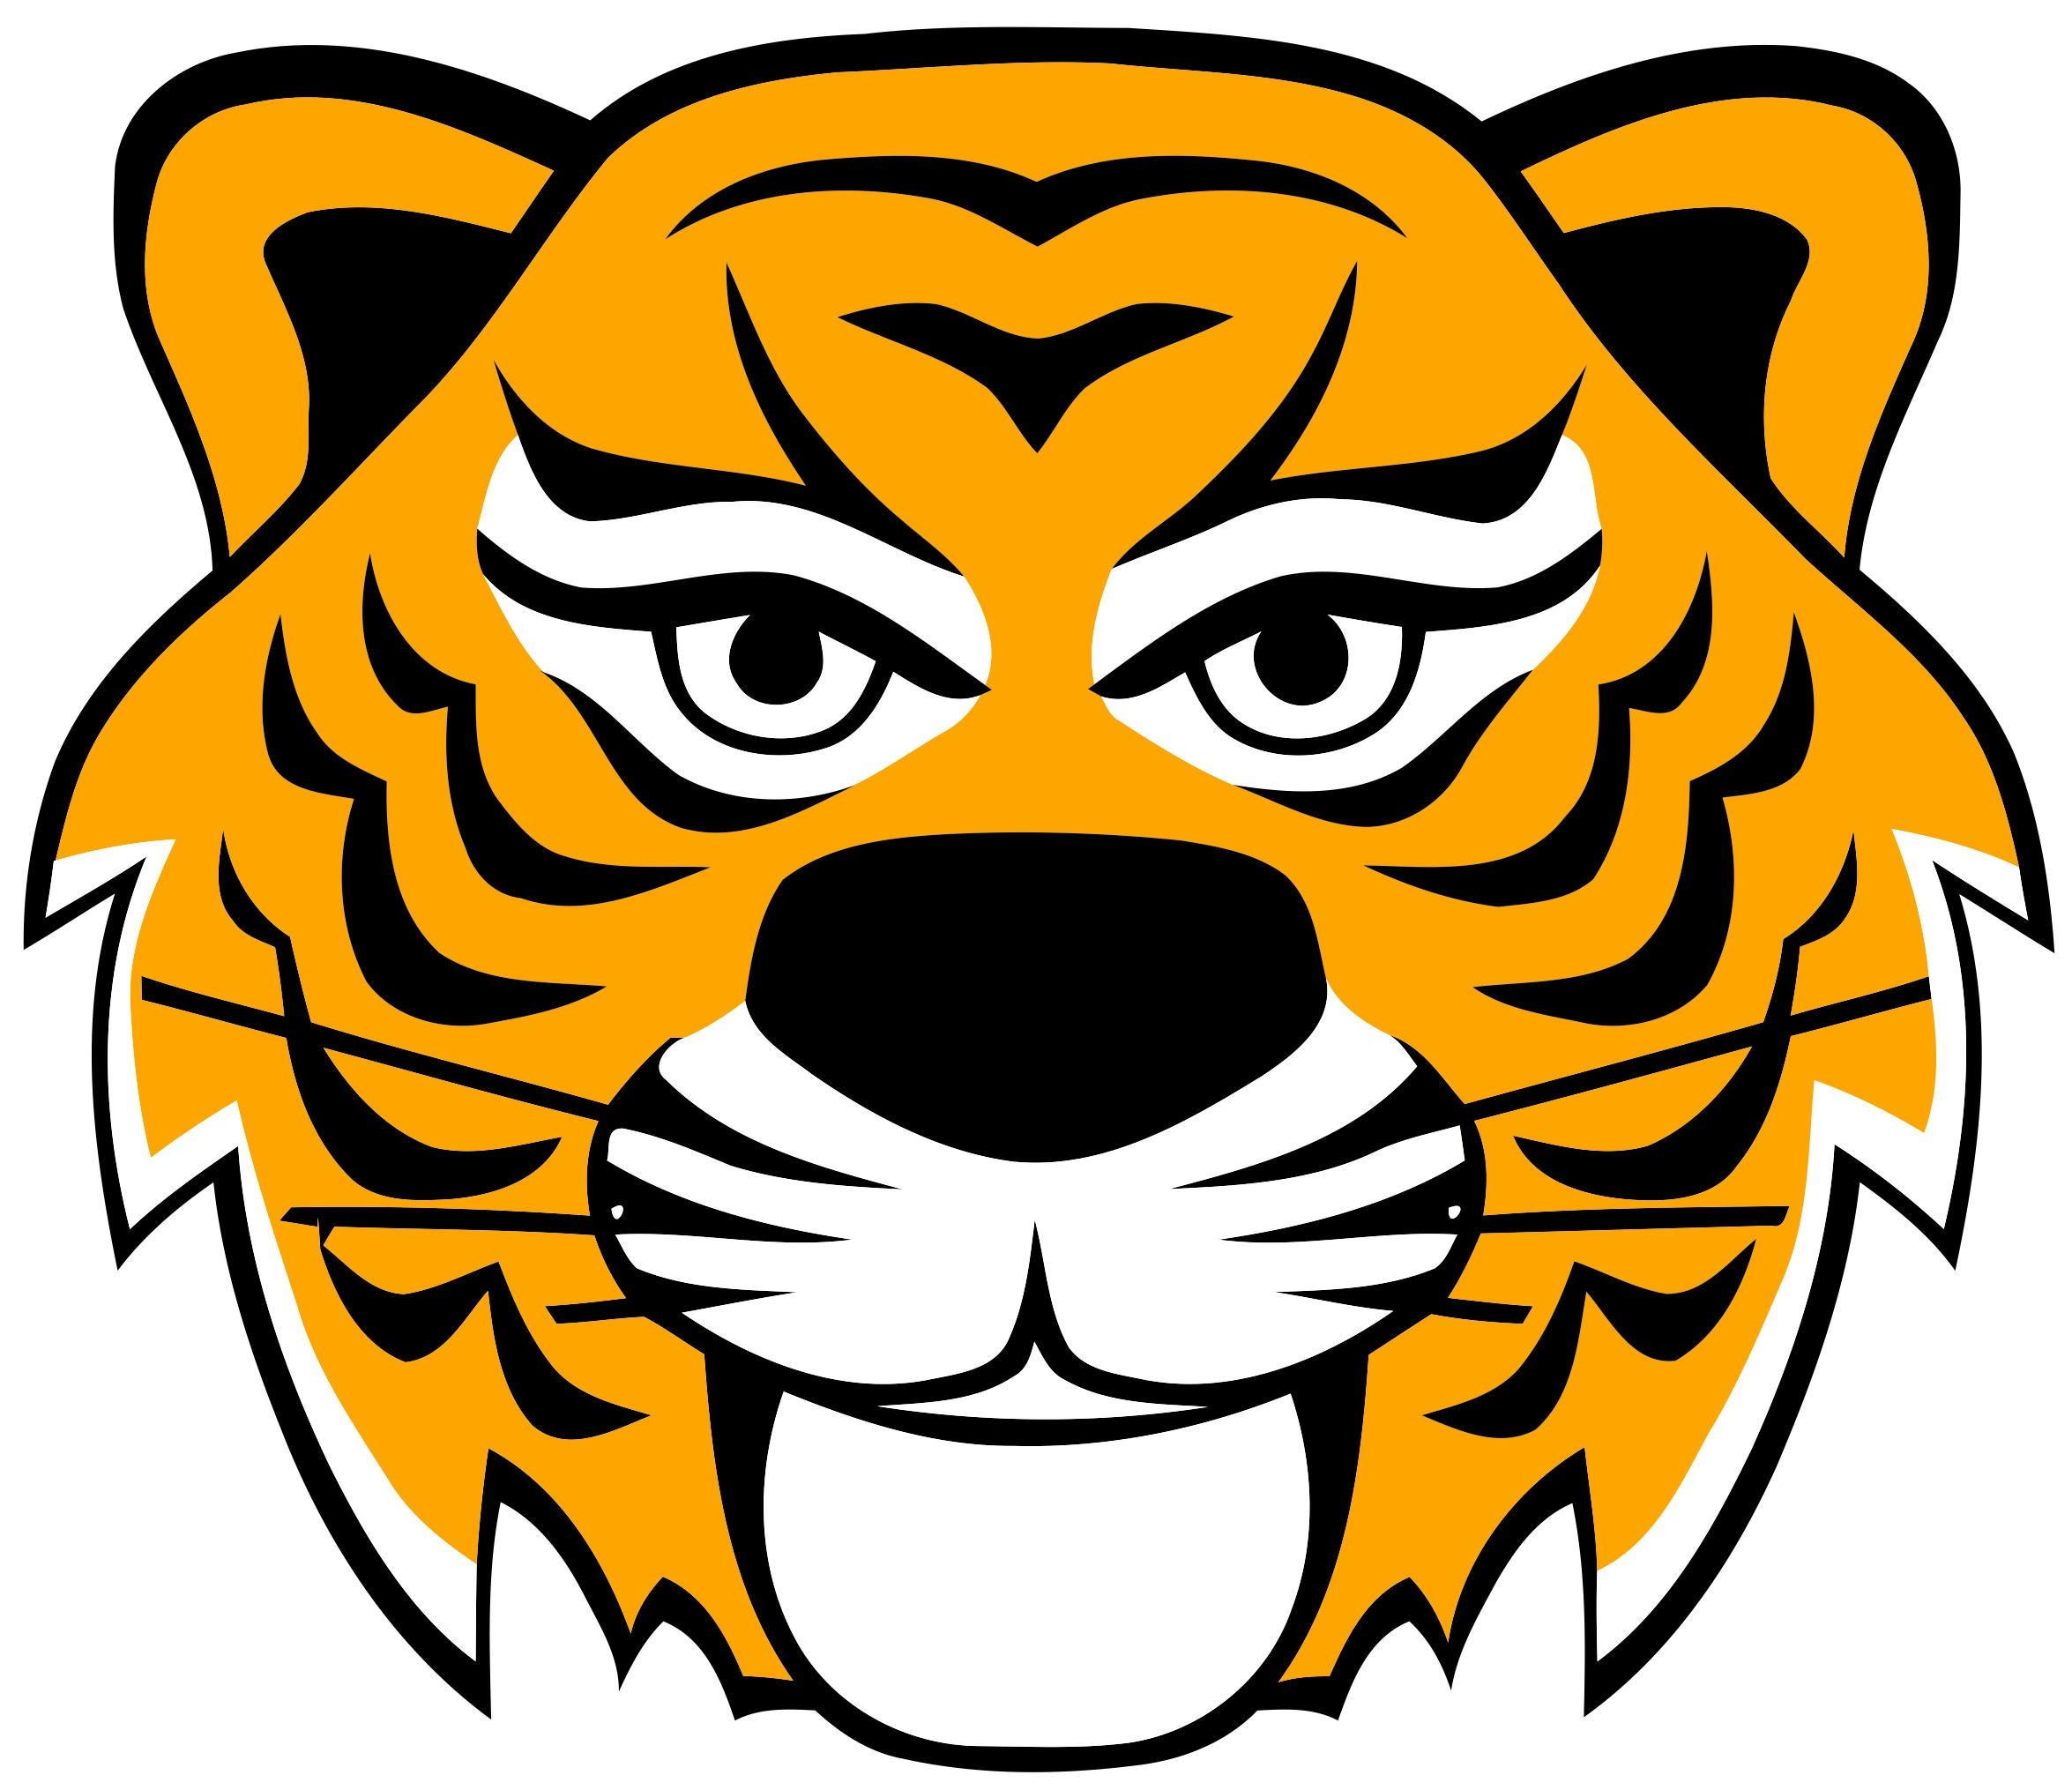 Tenny Logos - Lord Tennyson Elementary PAC - Home of the Tigers